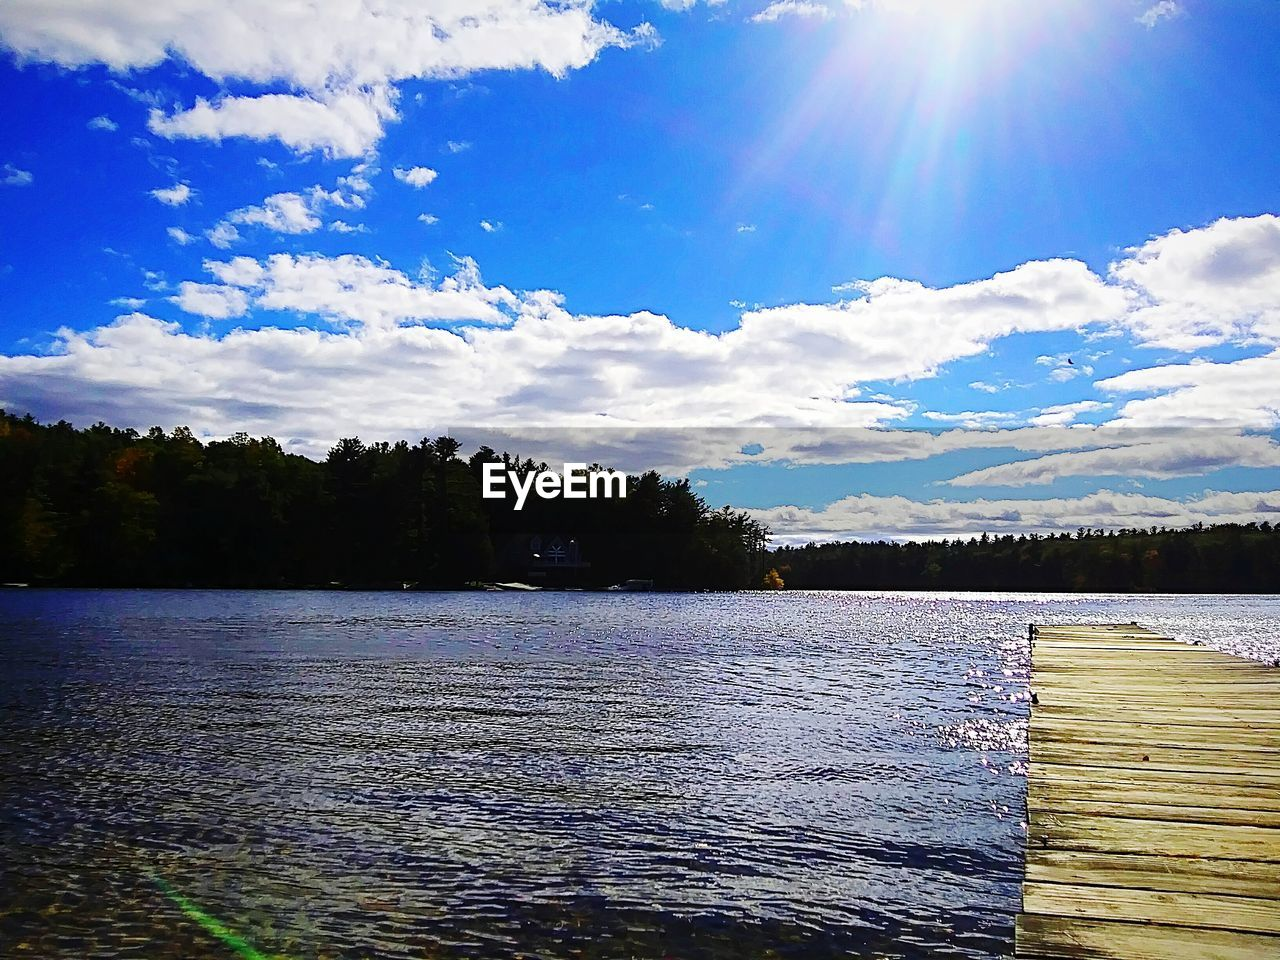 sky, water, cloud - sky, tree, beauty in nature, lake, plant, sunlight, scenics - nature, tranquil scene, tranquility, nature, day, no people, non-urban scene, sun, lens flare, wood - material, sunbeam, outdoors